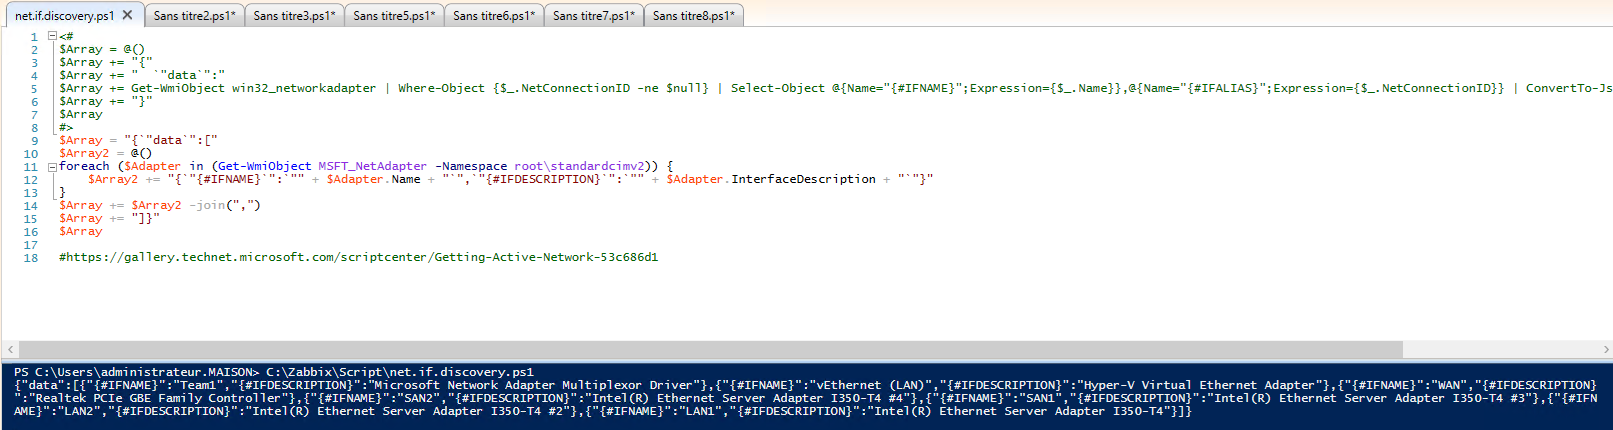 ZBXNEXT-2765] New attribute in net if discovery for zabbix_agentd on